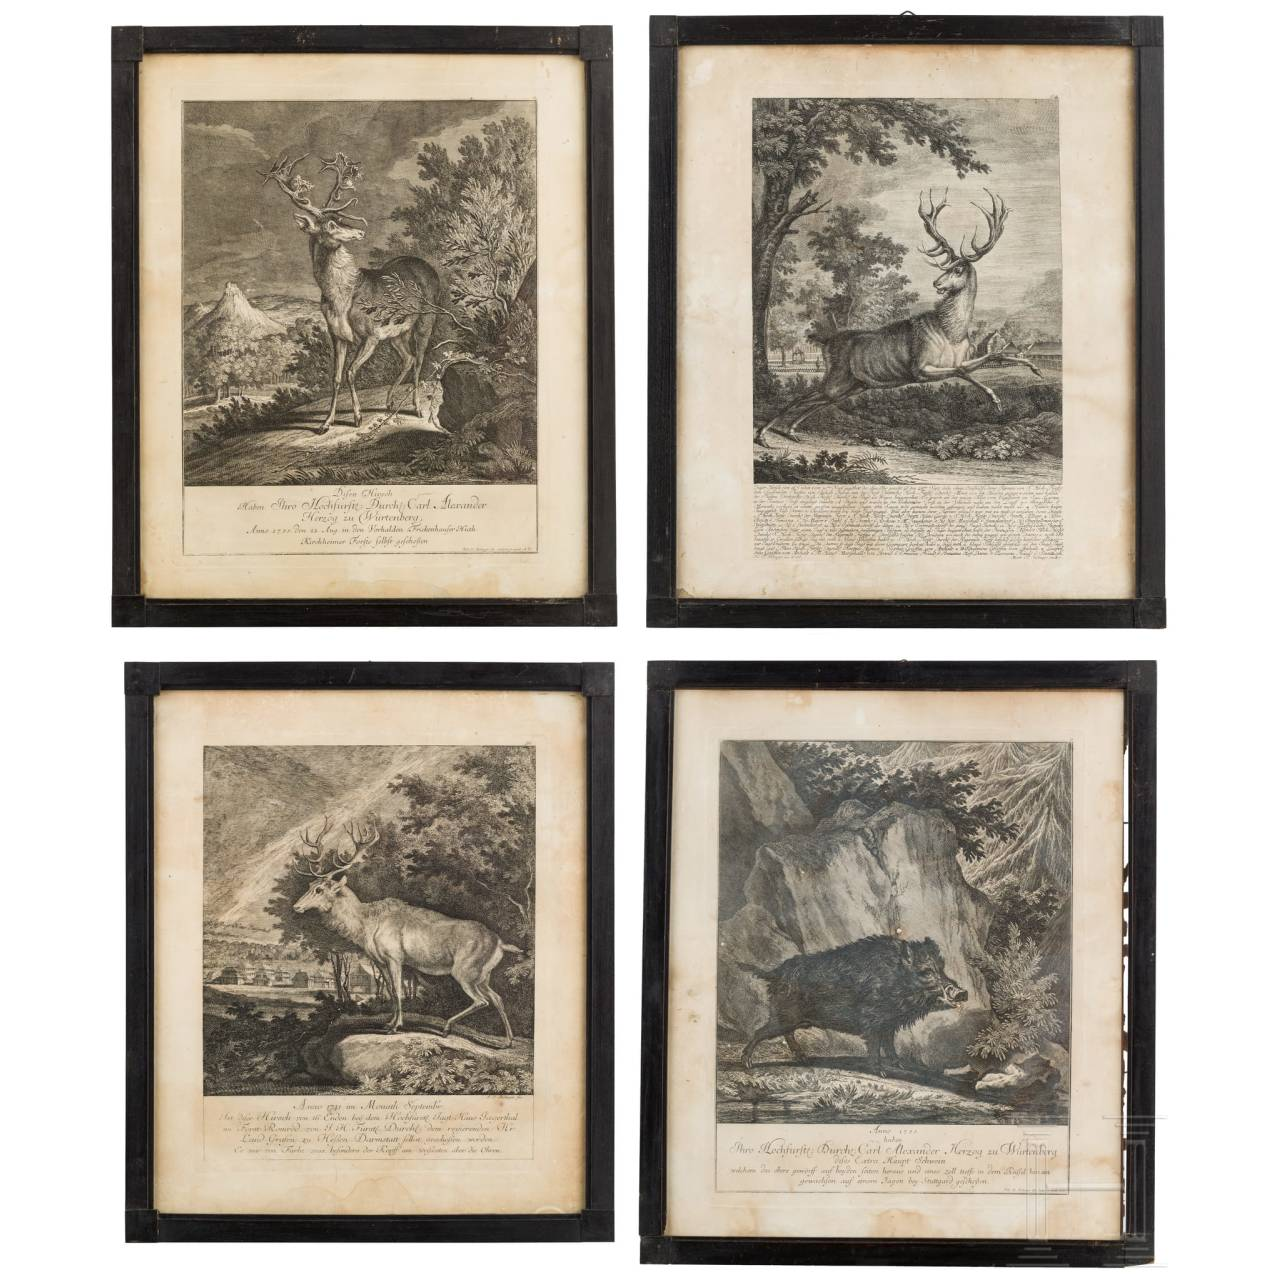 Four engravings by Johan Elias Ridinger, Augsburg, circa 1760